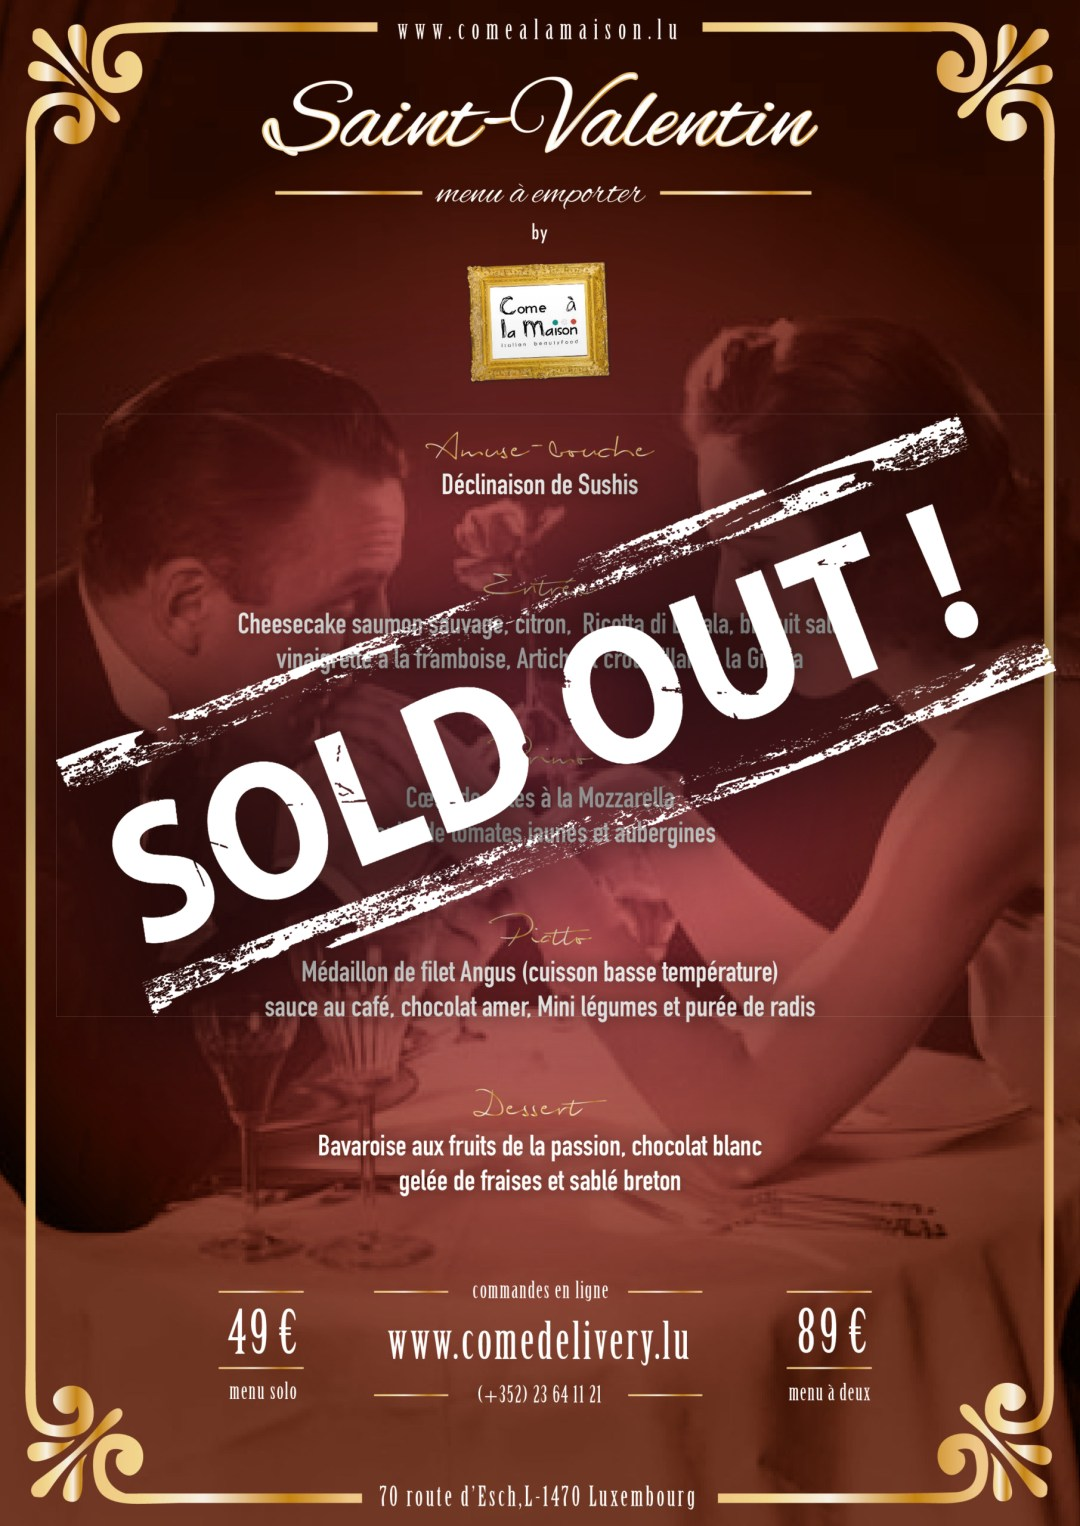 MENU SOLD OUT